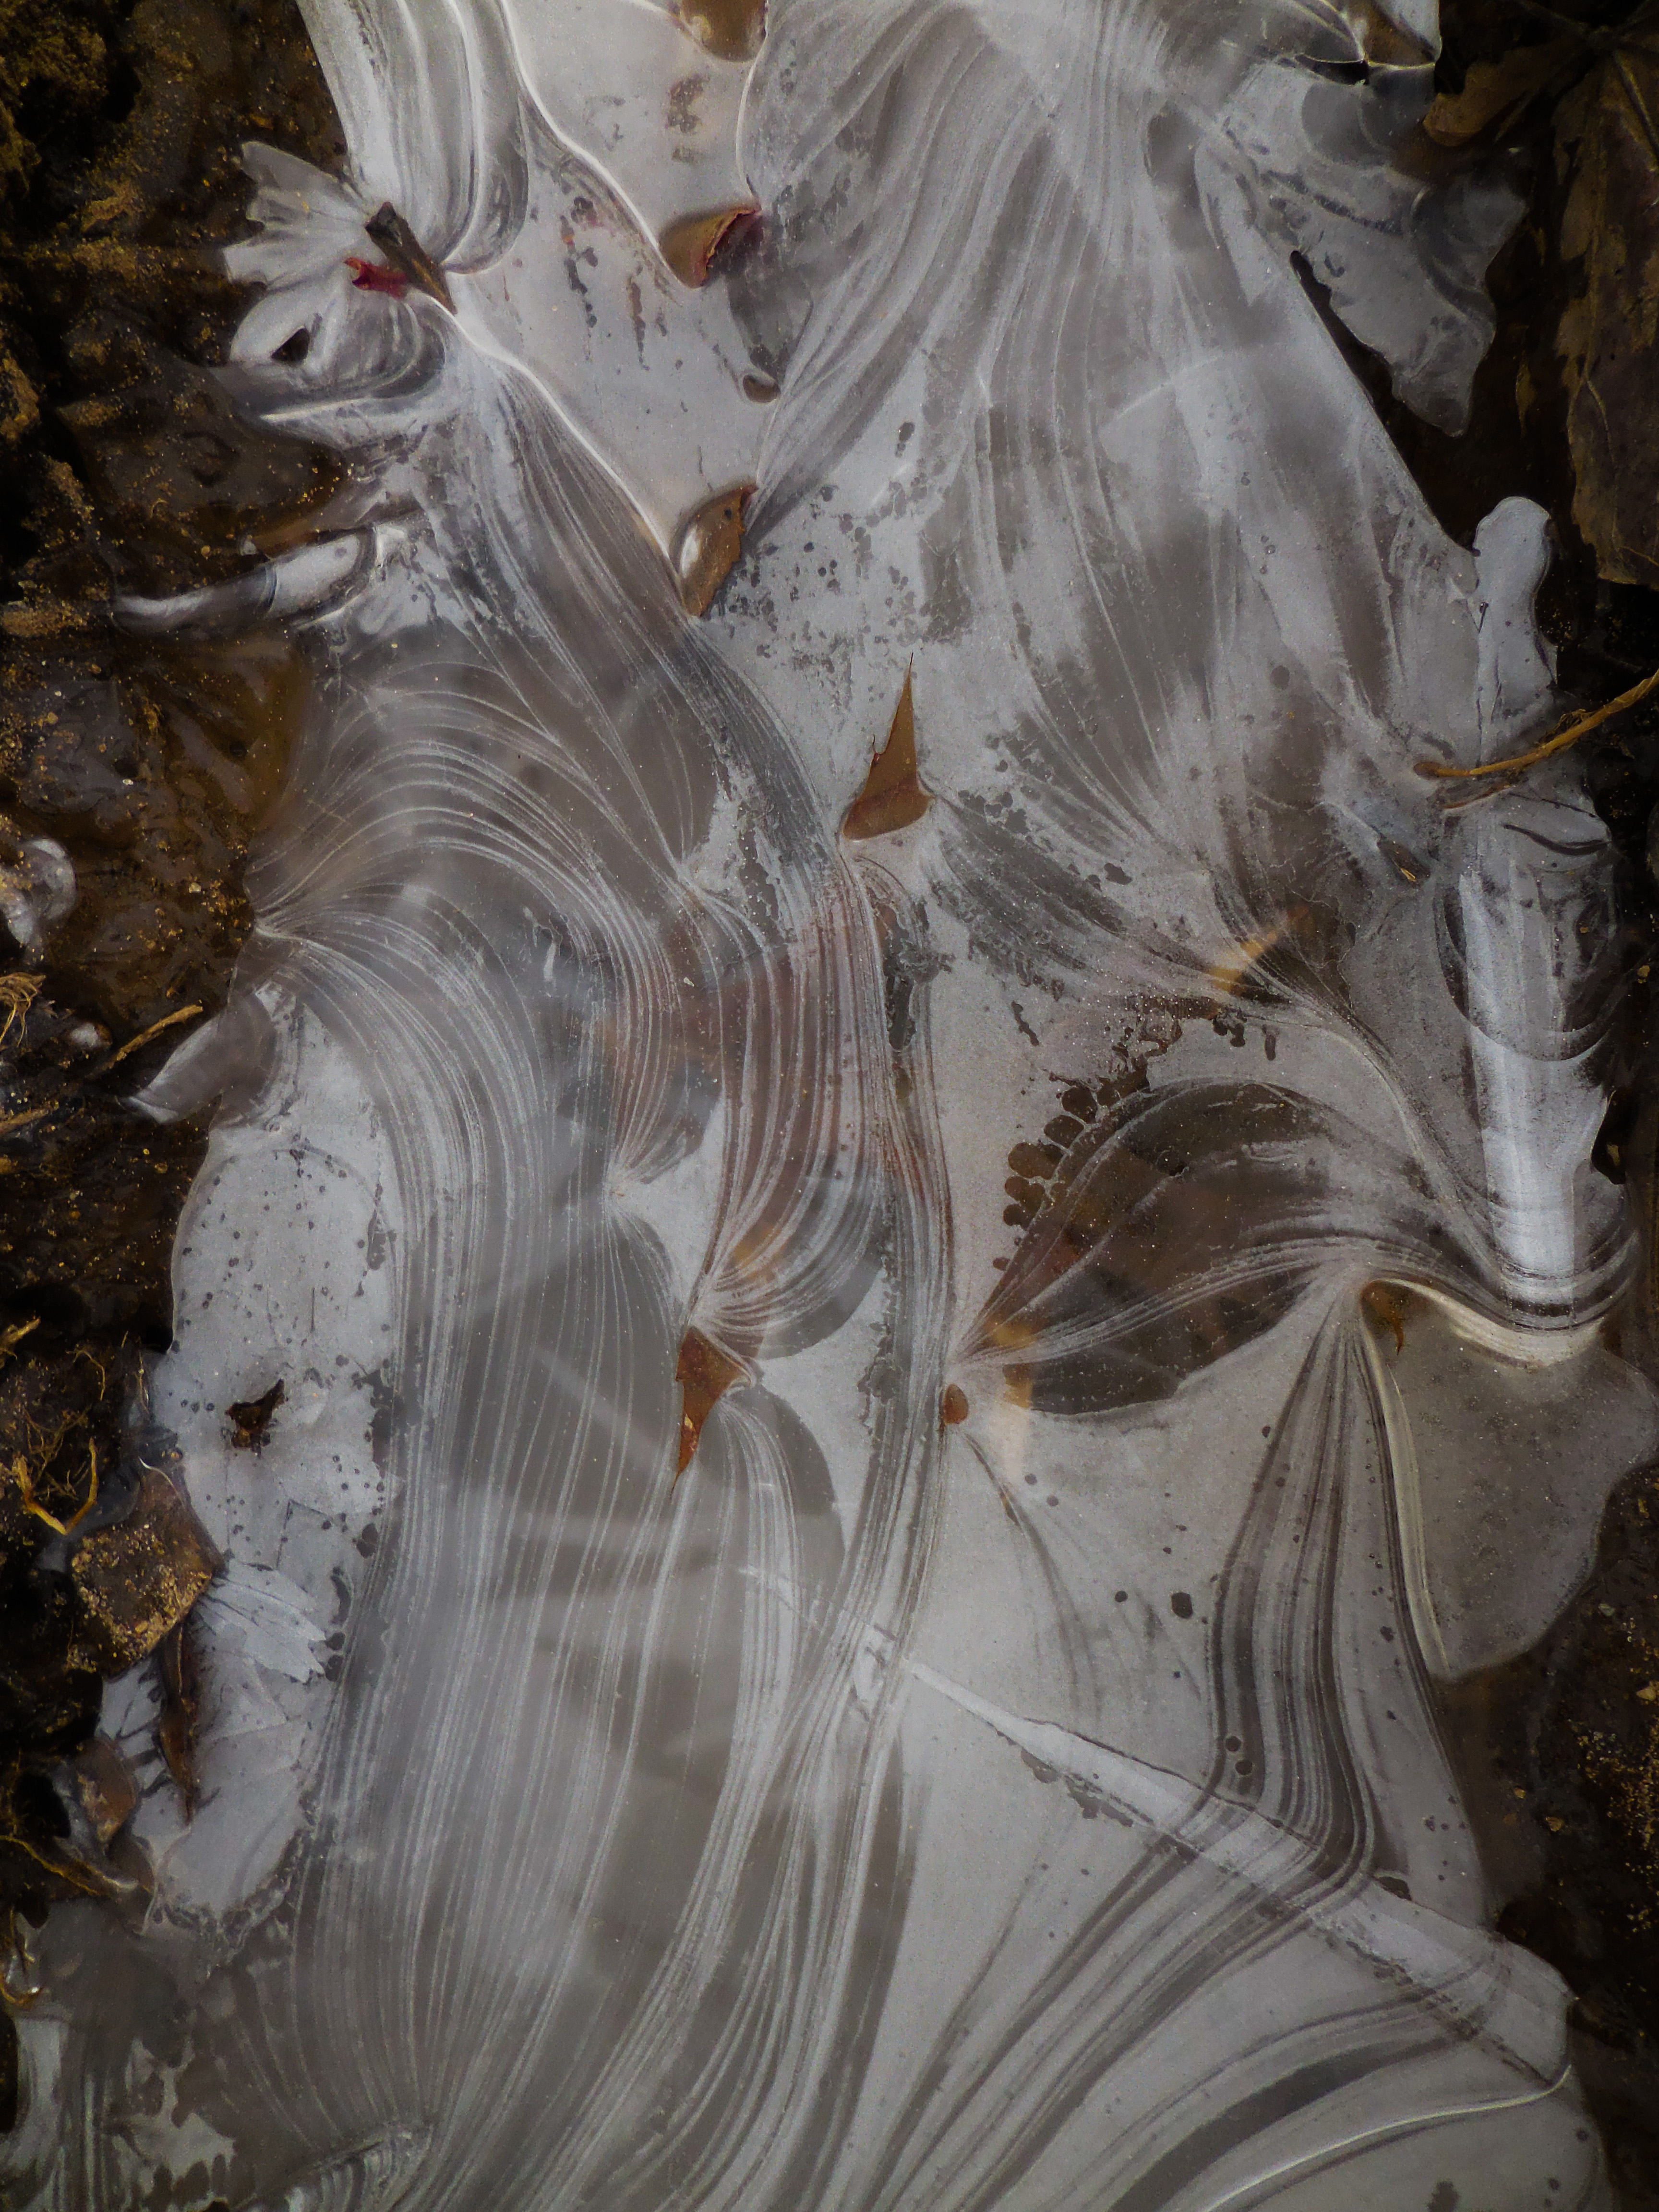 January Clothed in Ice #1